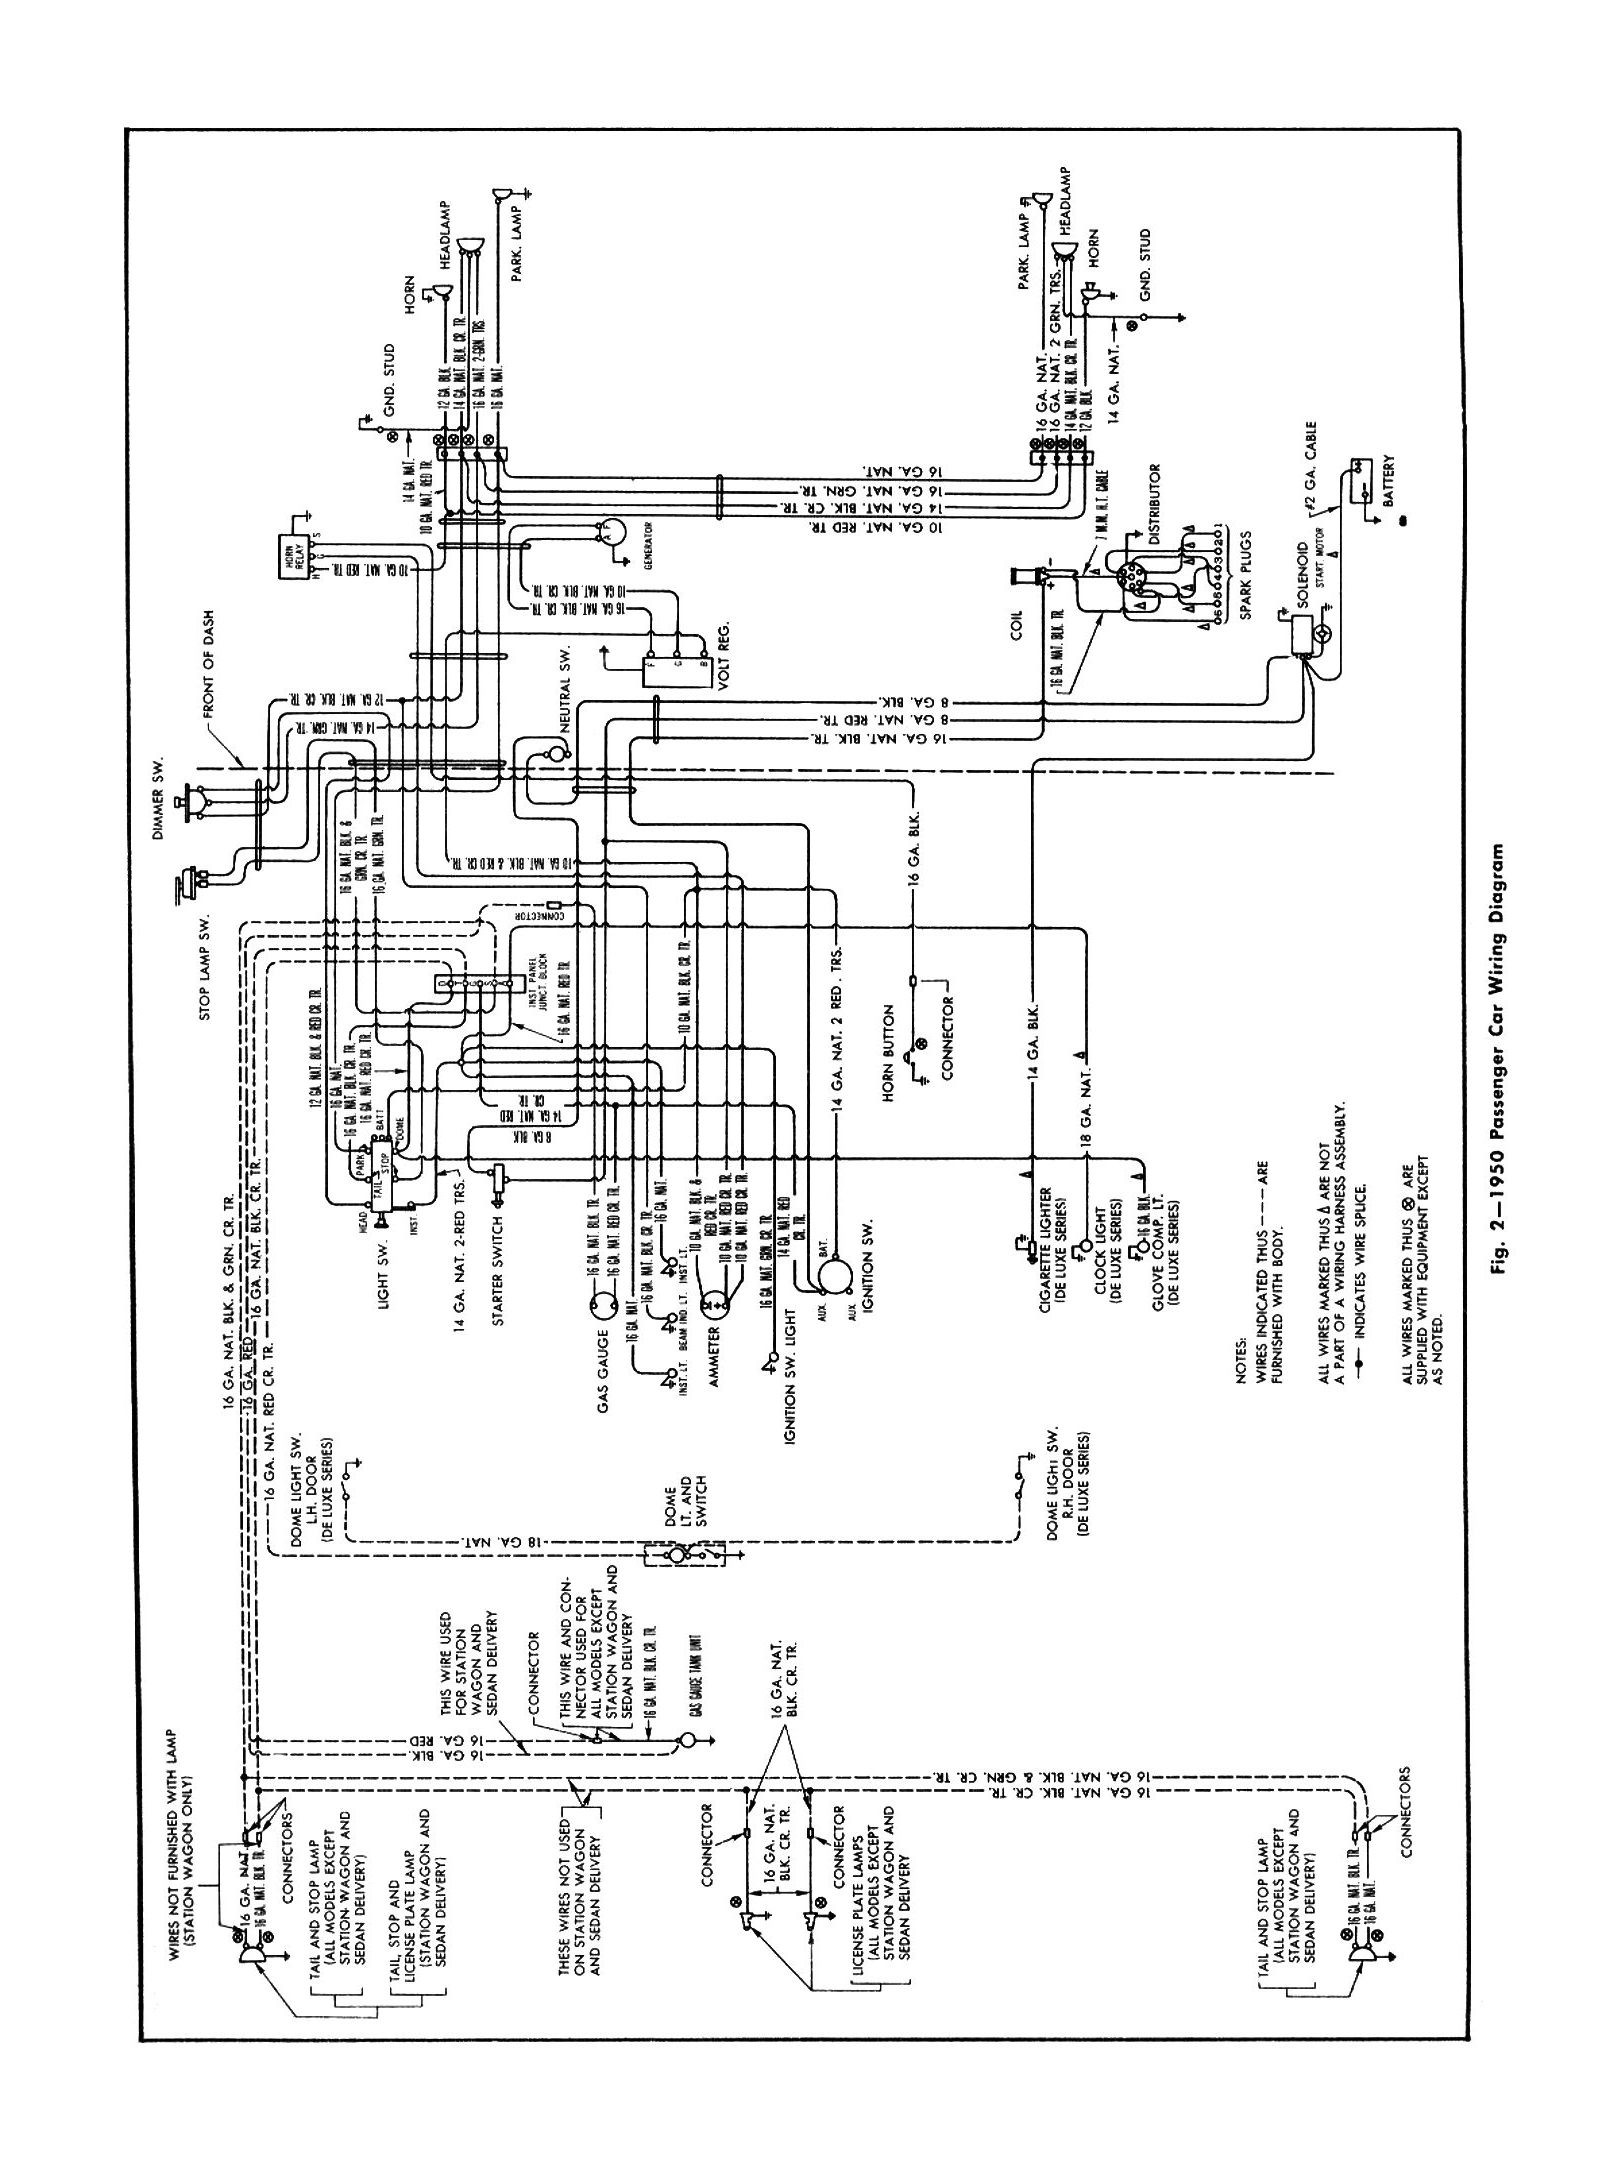 50car chevy wiring diagrams GM Factory Wiring Diagram at honlapkeszites.co